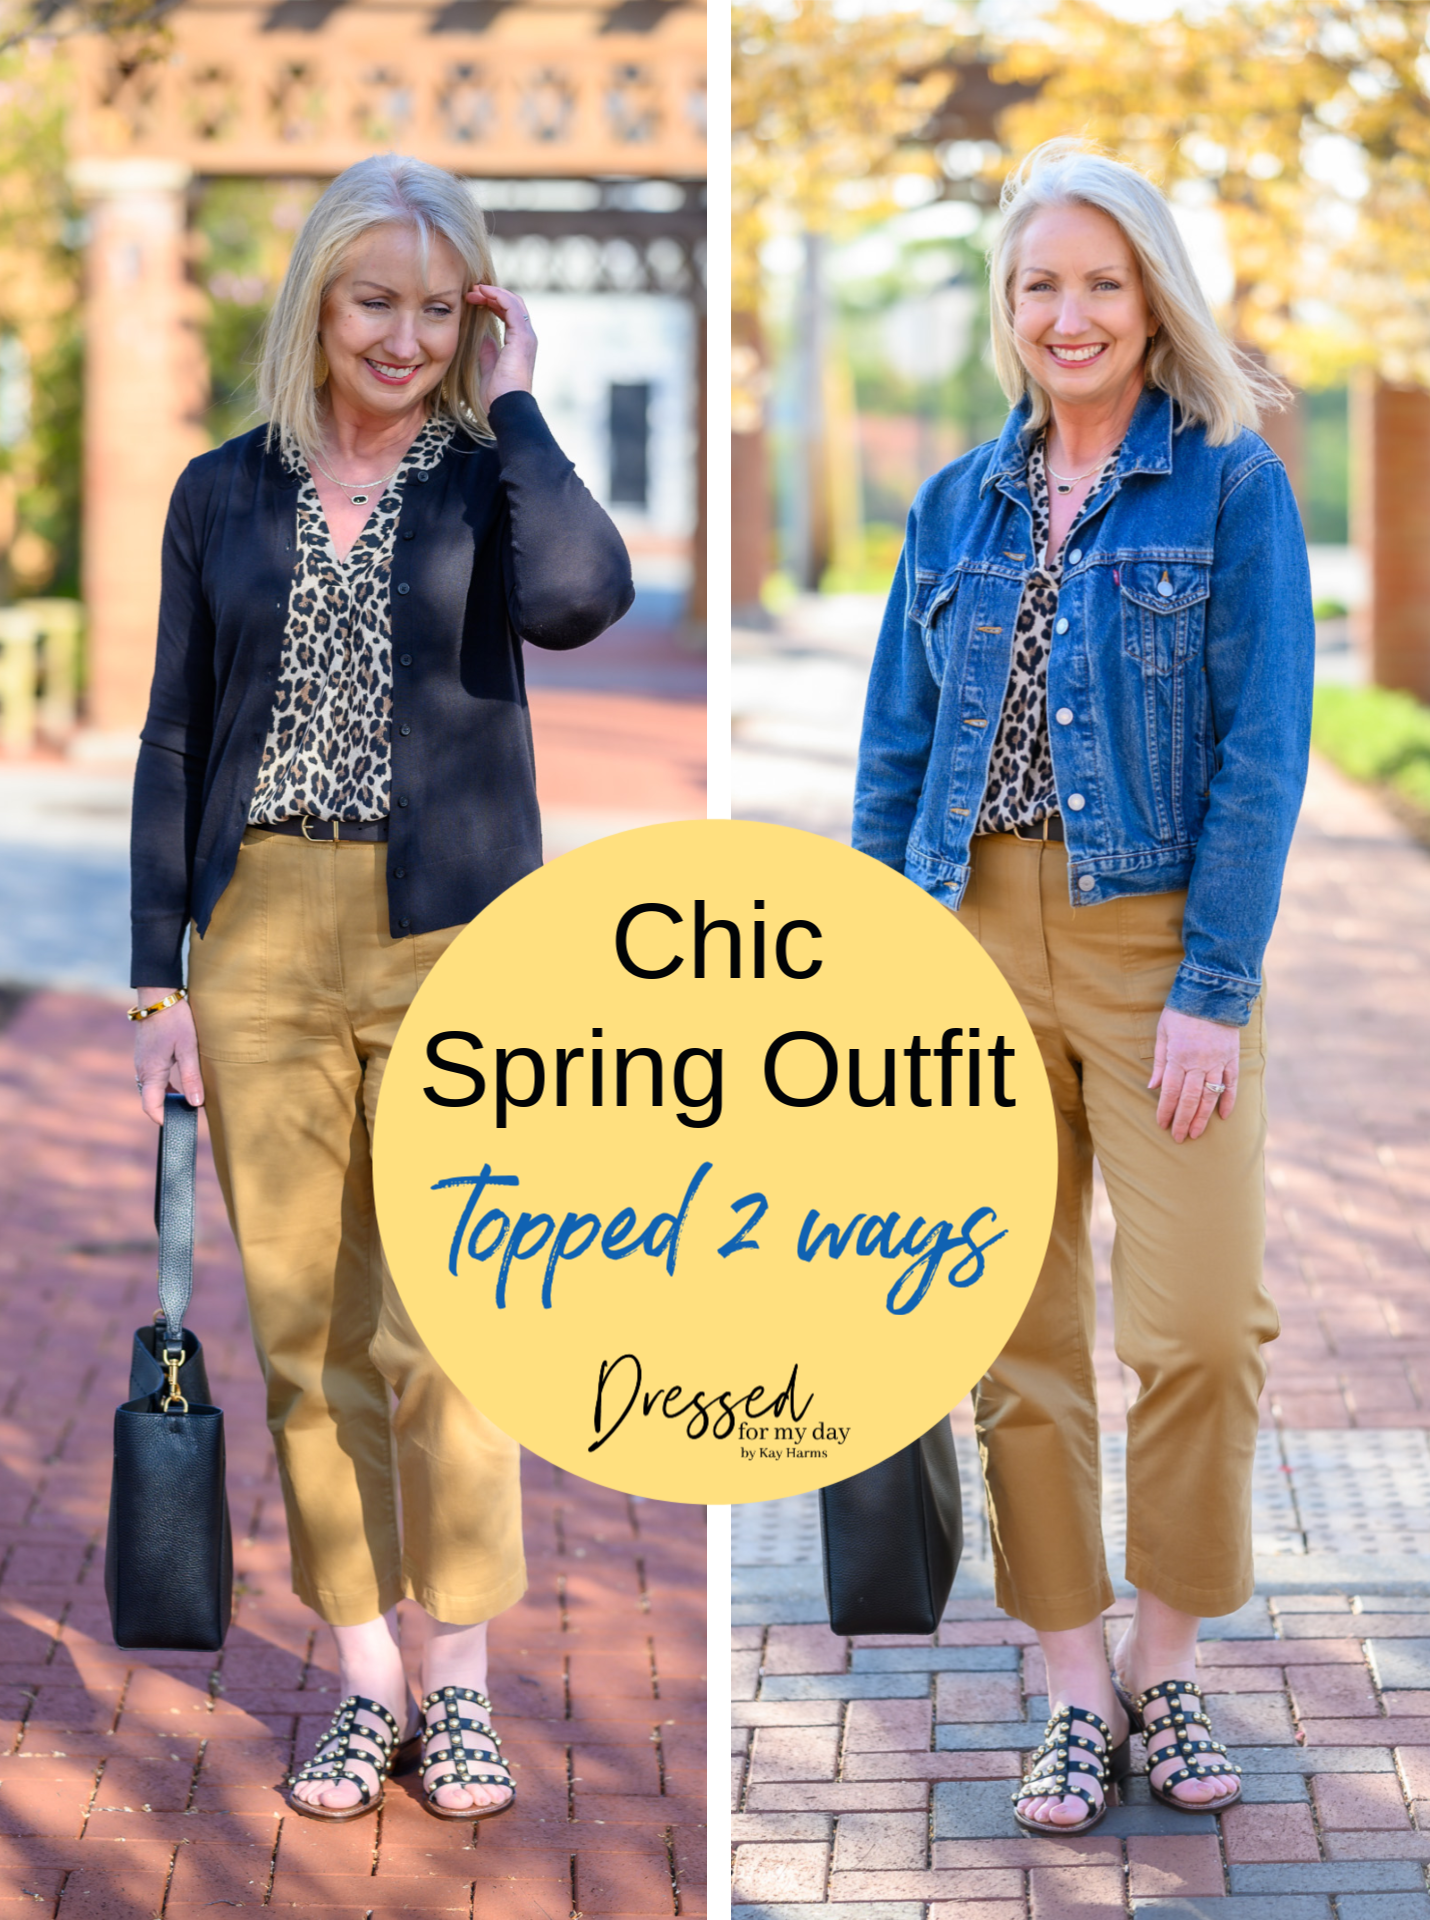 Chic Spring Outfit Topped 2 Ways